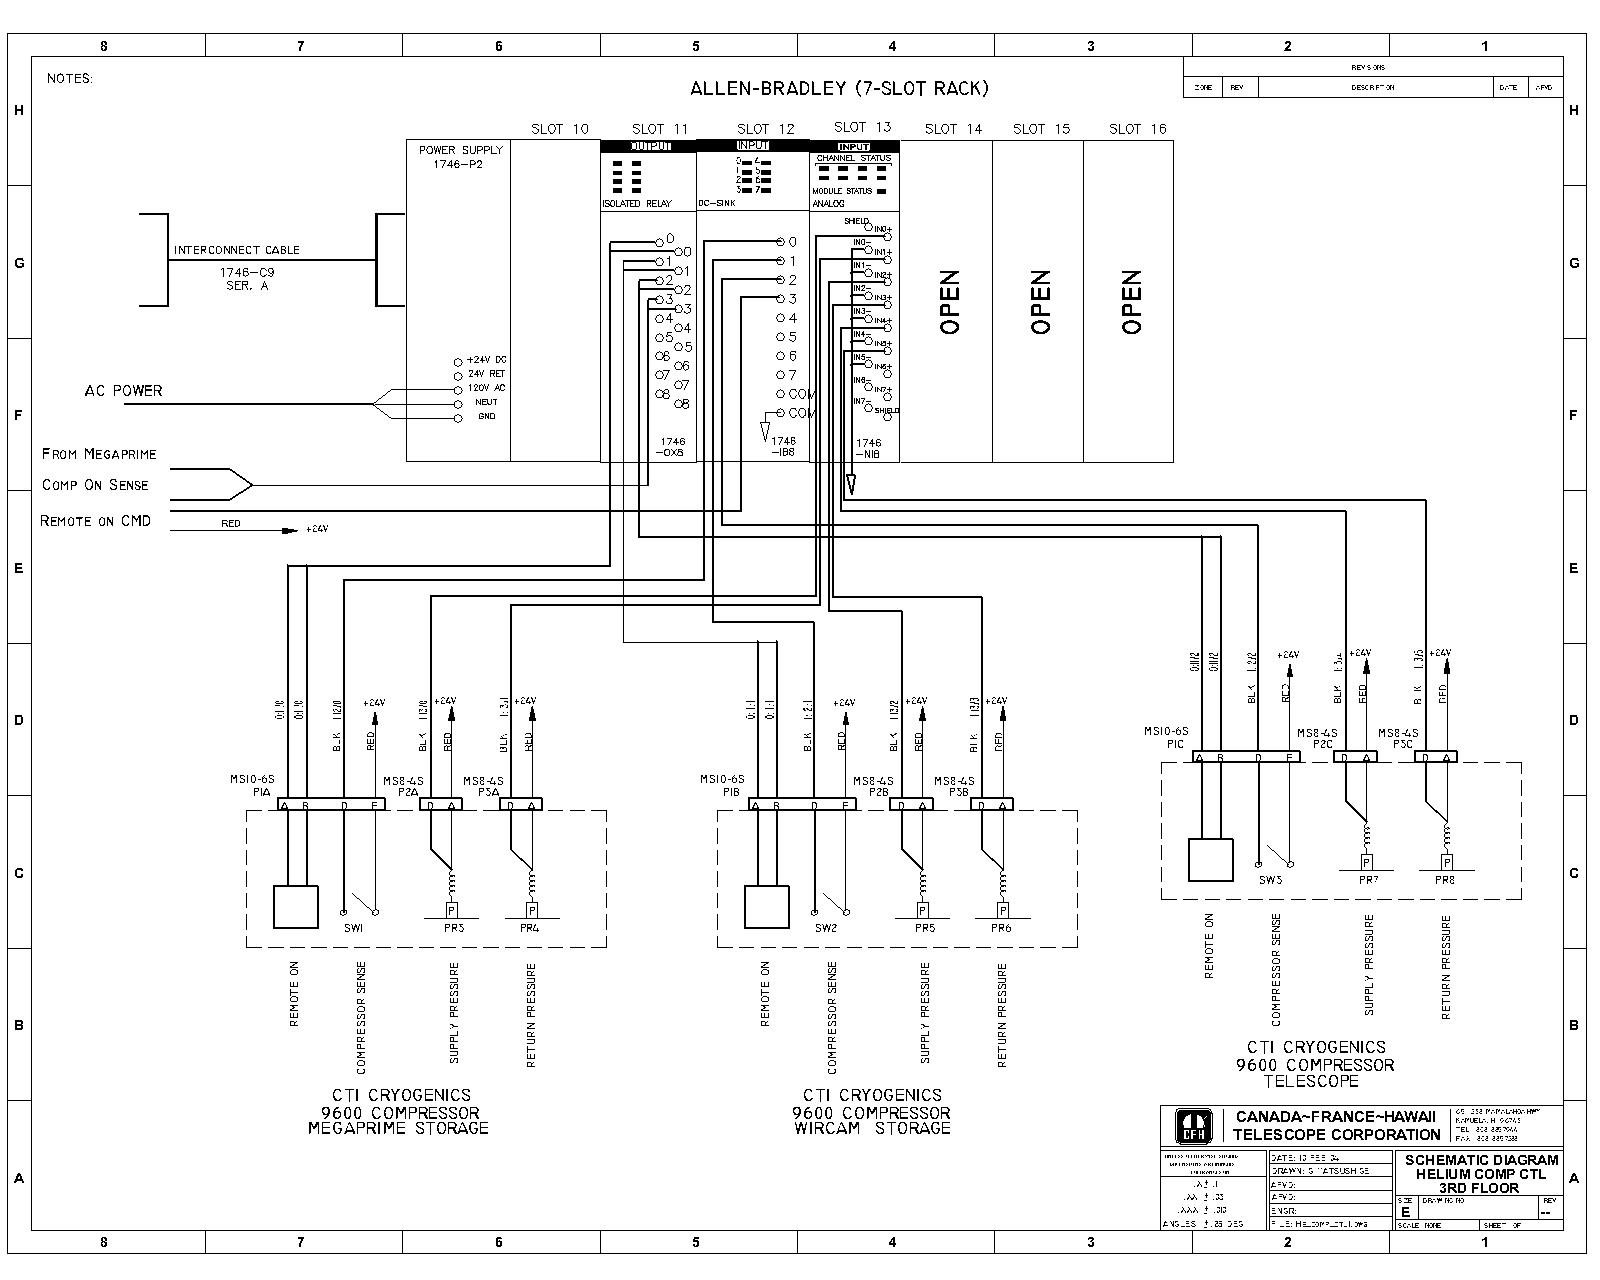 He_comp_ctl1 Model wircam environment draw wiring diagrams at aneh.co